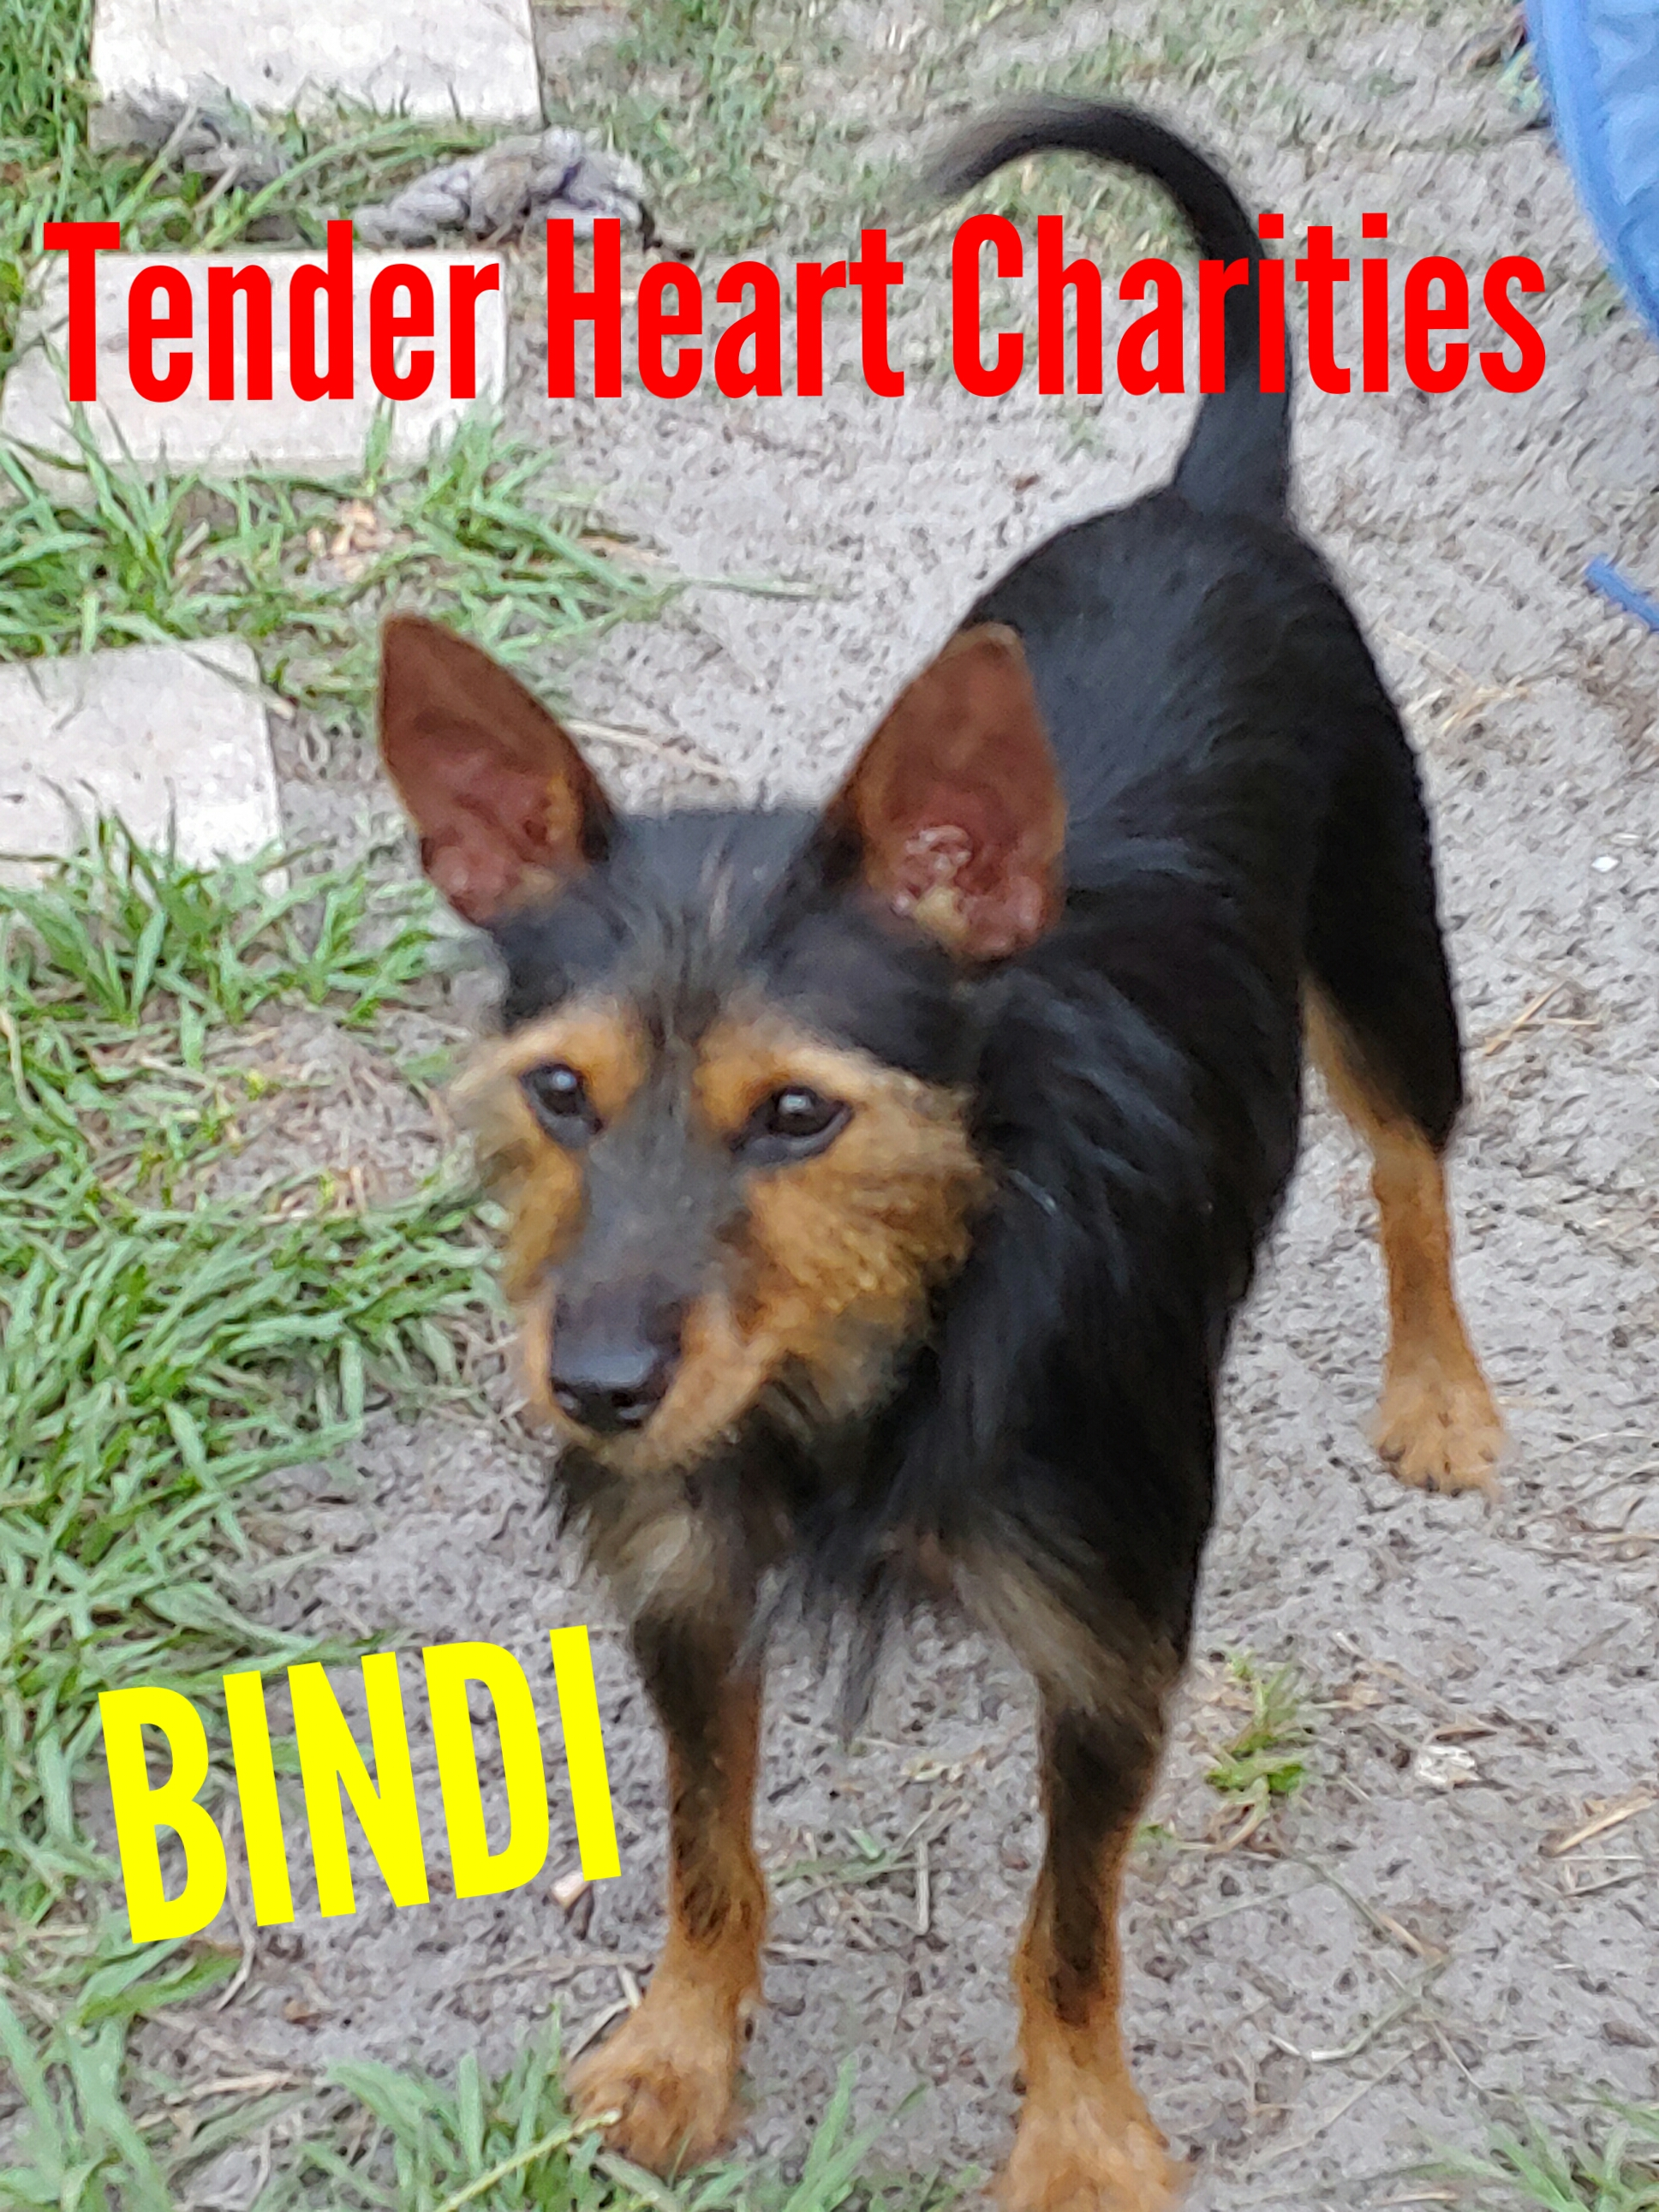 Bindi – Animal of the Week Episode 24